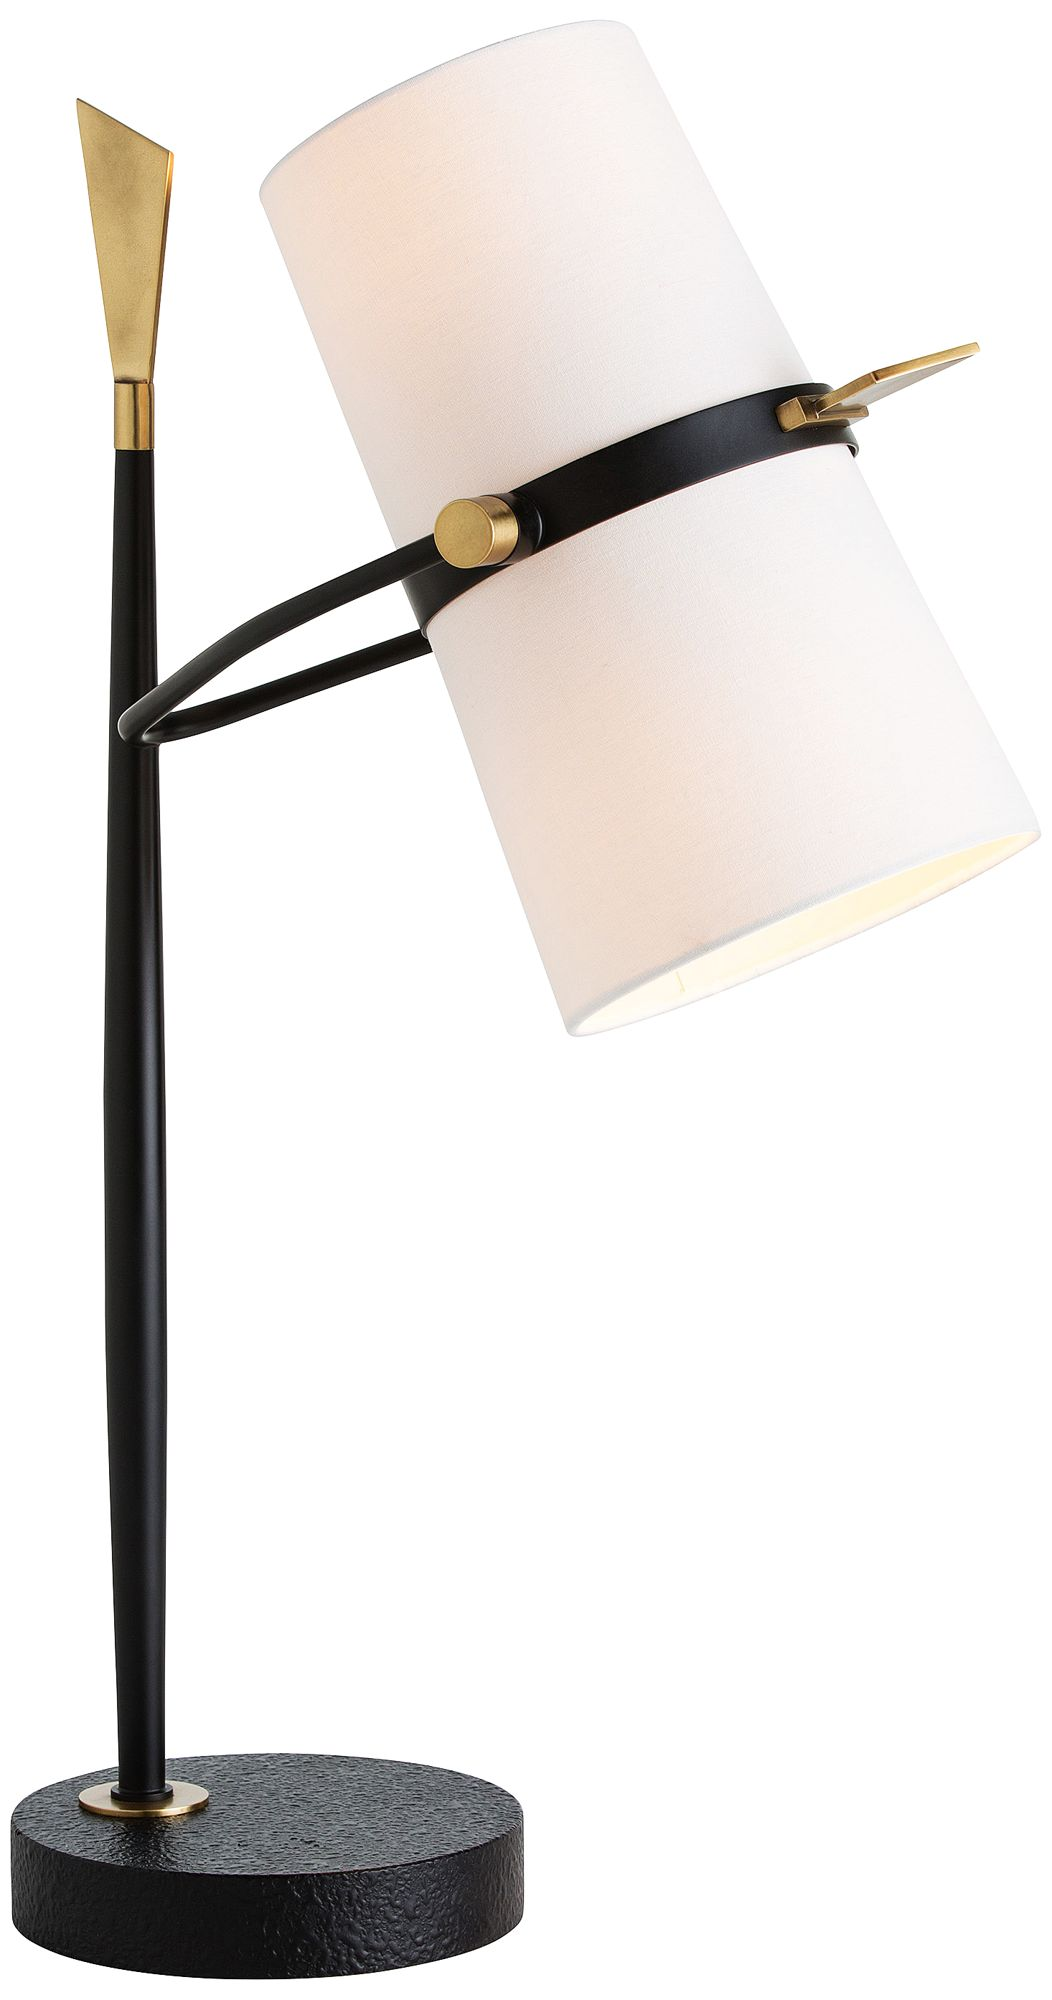 Arteriors Home Yasmin Iron and Brass Table Lamp 5X264 Lamps Plus